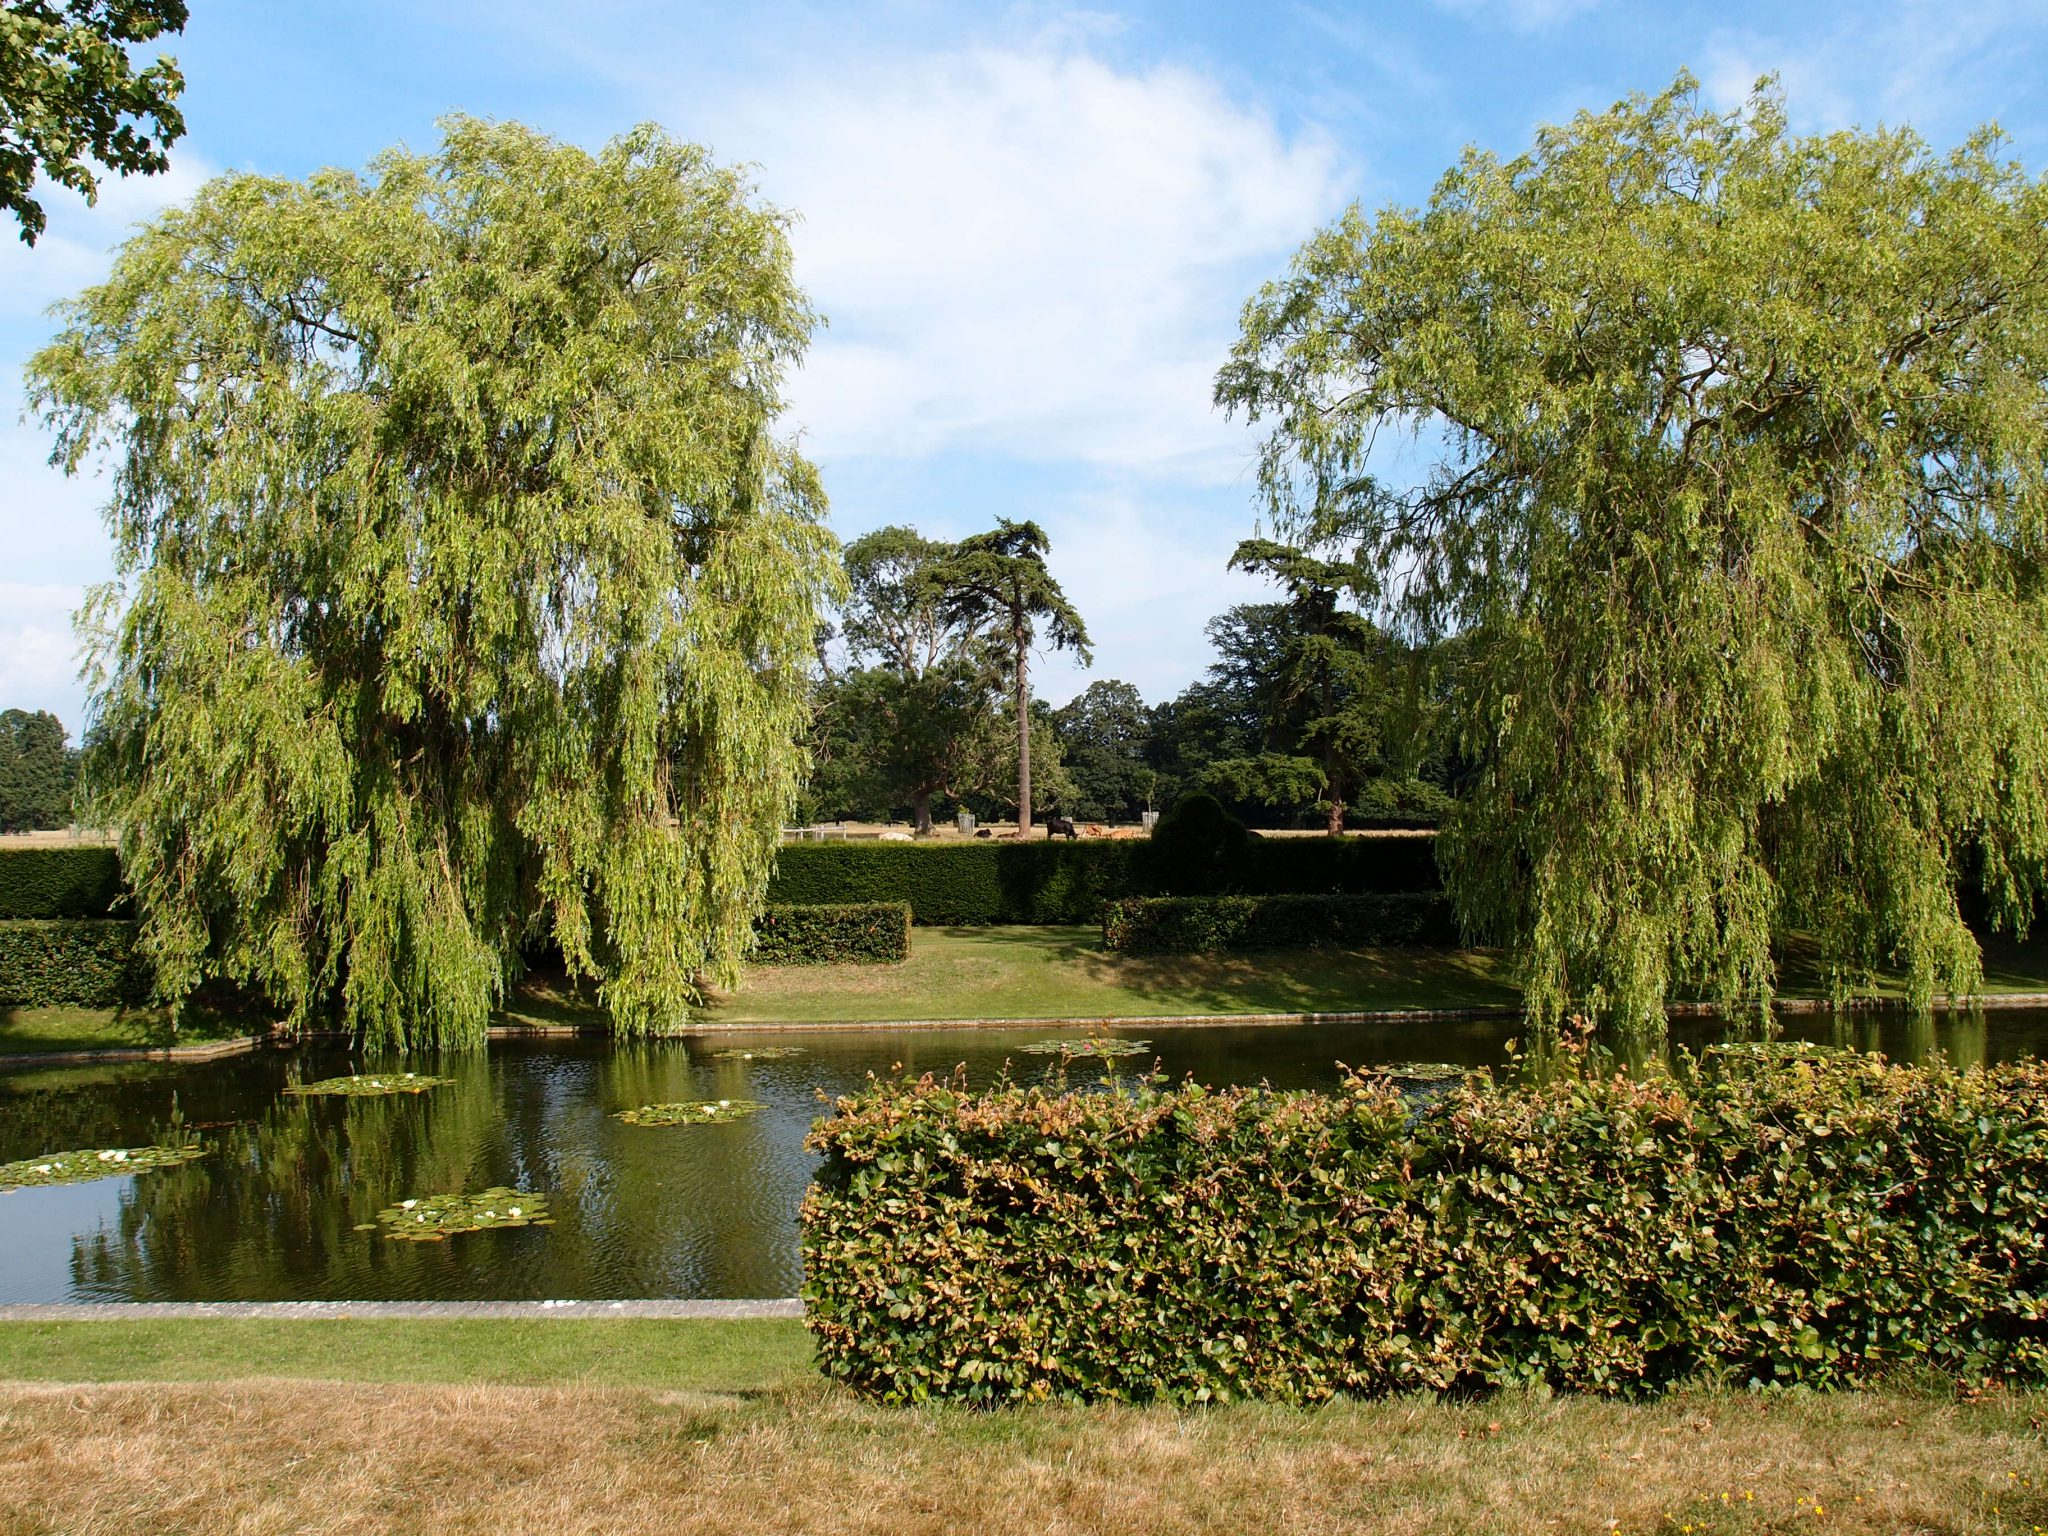 Massive weeping willow trees are planted along the east side of the Lily Pond